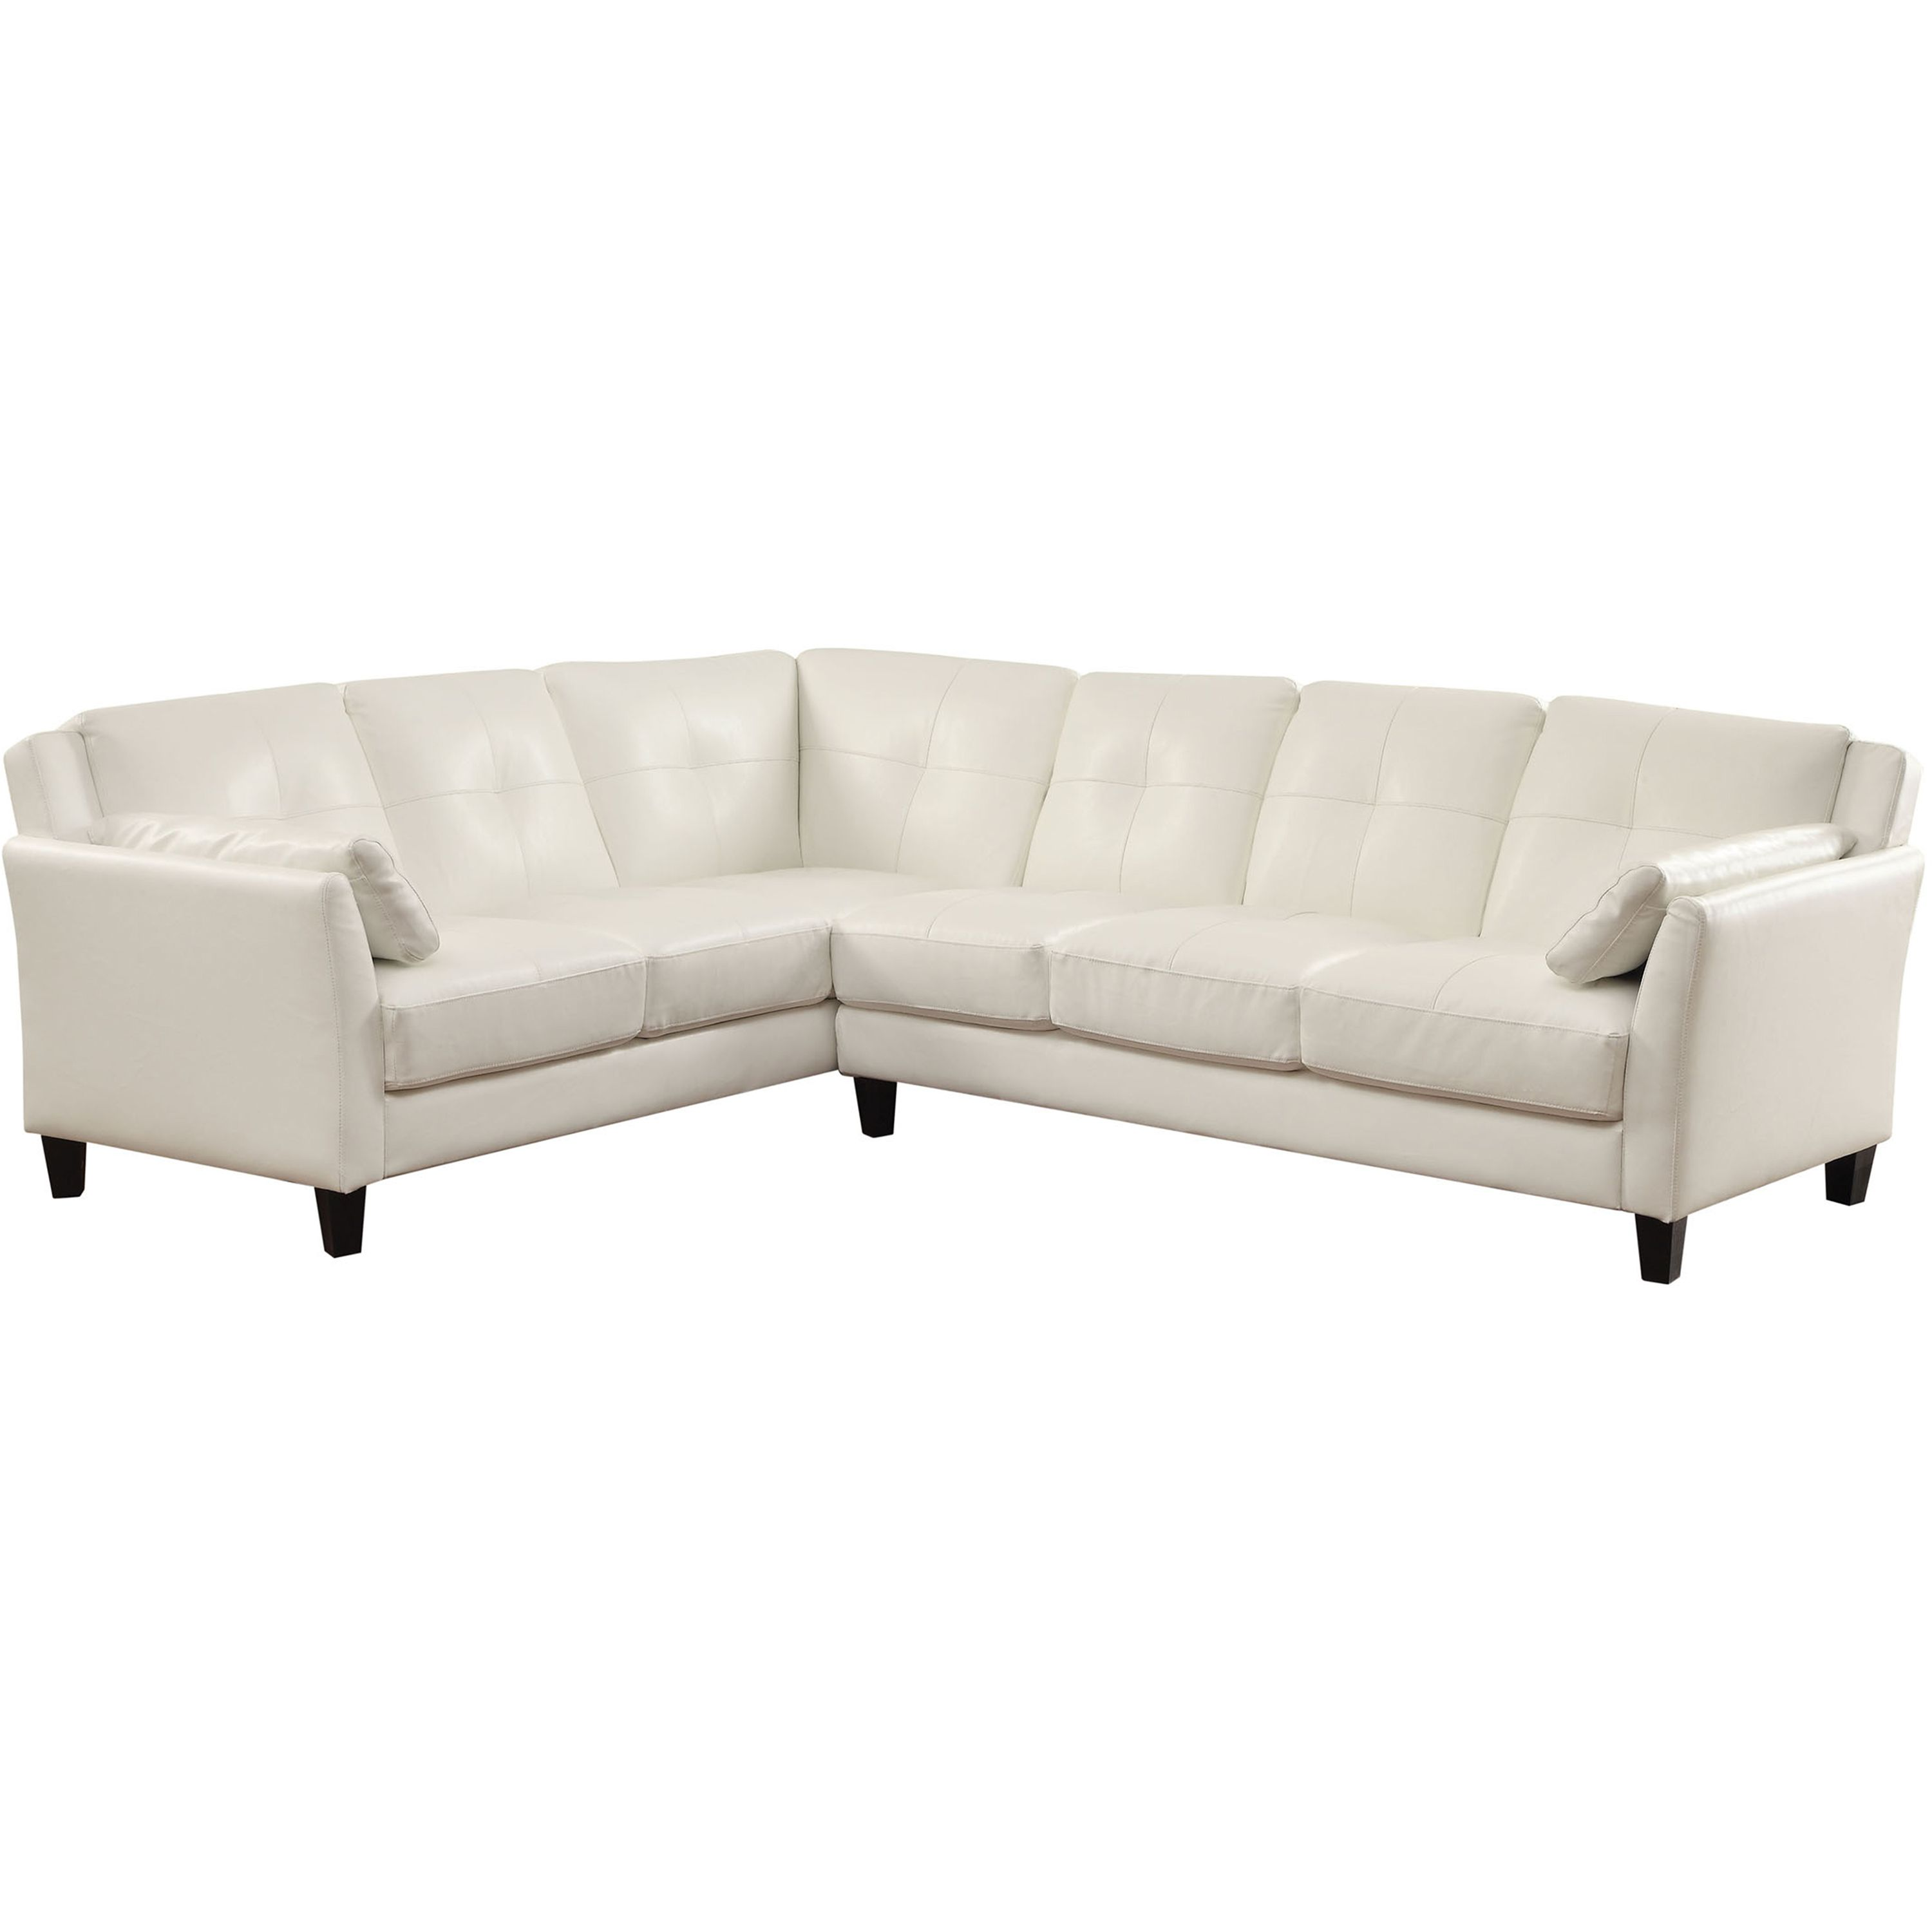 No matter if you are having friends over to watch a movie or just relaxing after work, the Santa Barbara sectional sofa from Venetian Worldwide will provide that extra comfort that you deserve. Upholstered in White Leatherette, this piece is a welcomed addition to any style décor. Pillows are included.